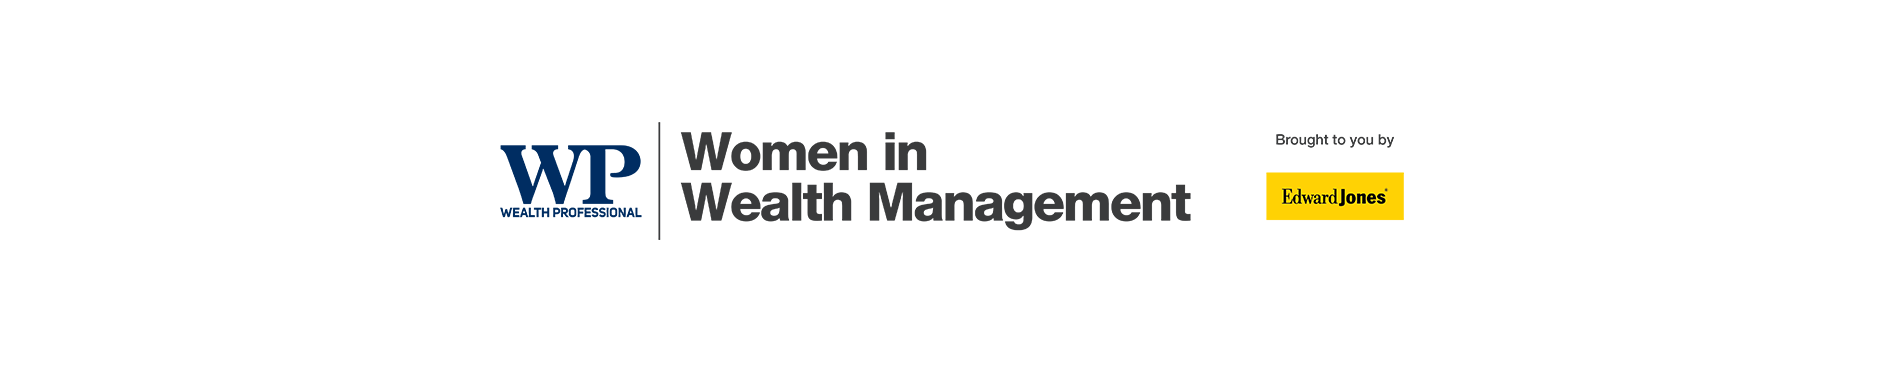 Women in Wealth Management